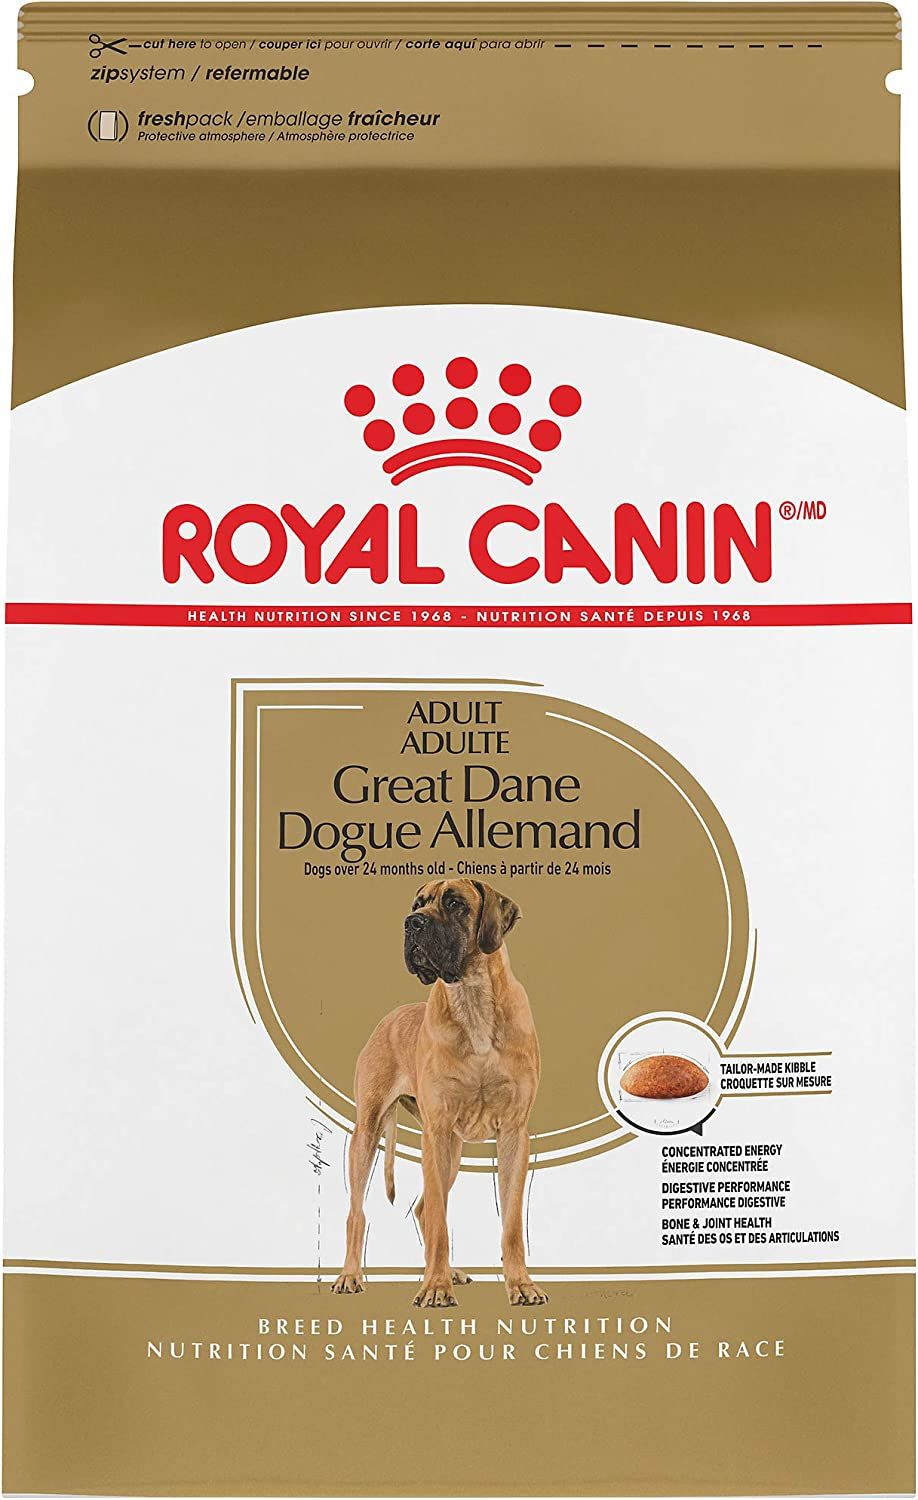 3. Royal Canin Great Dane Adult Dry Dog Food